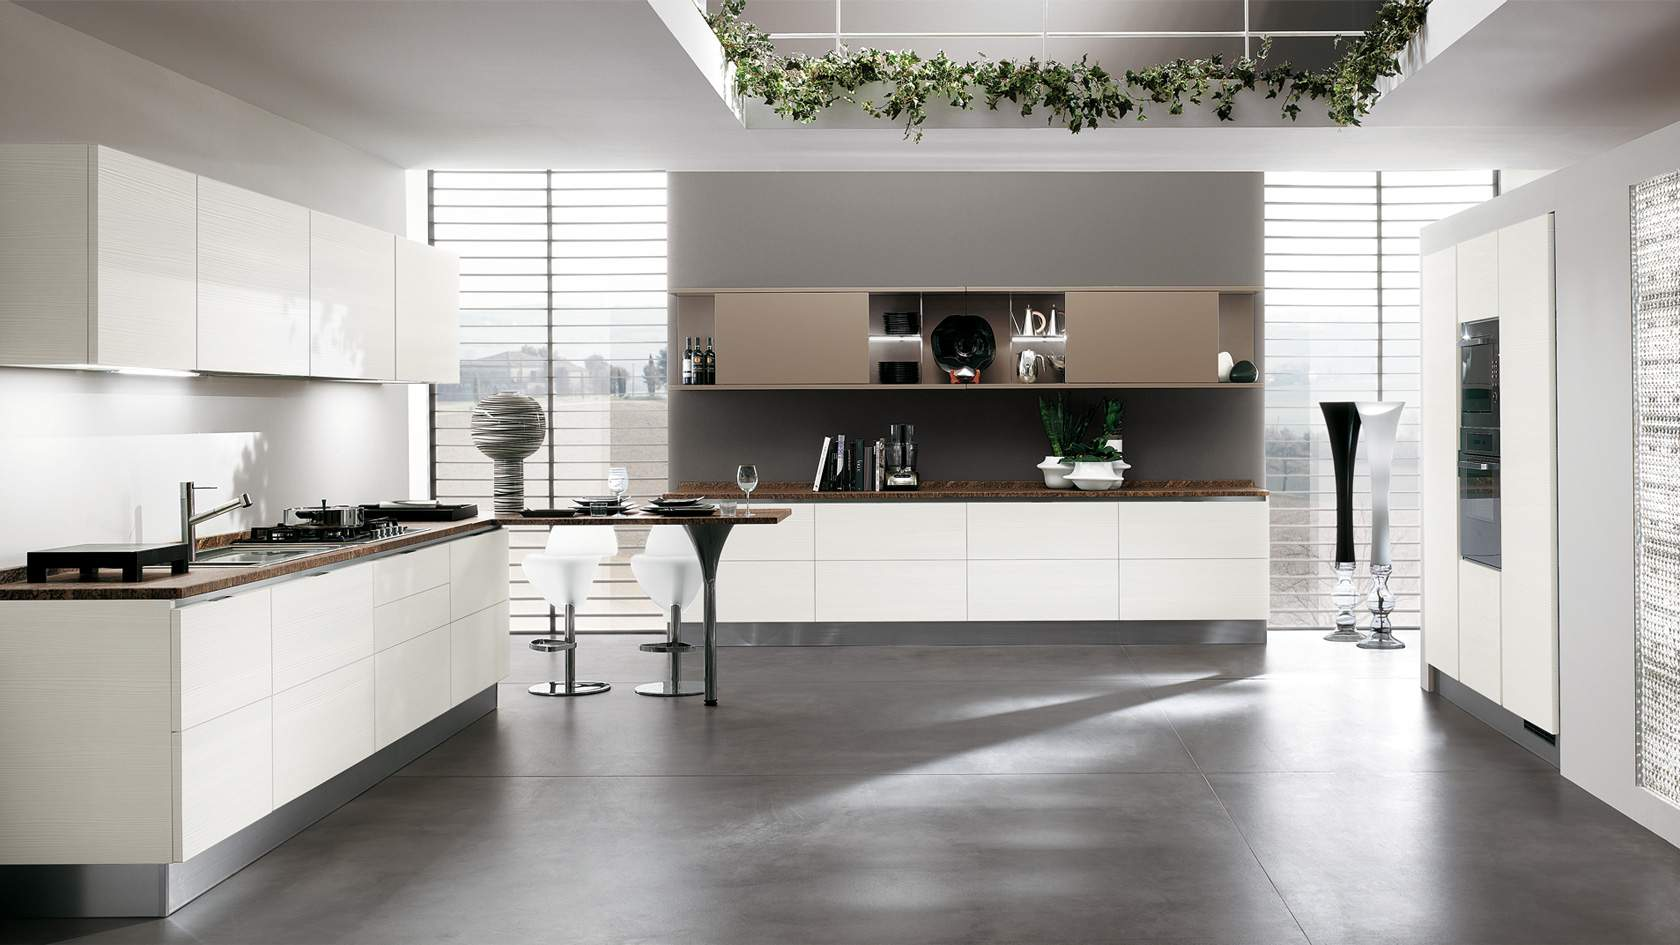 Beautiful Catalogo Cucine 2015 Photos - Ideas & Design 2017 ...